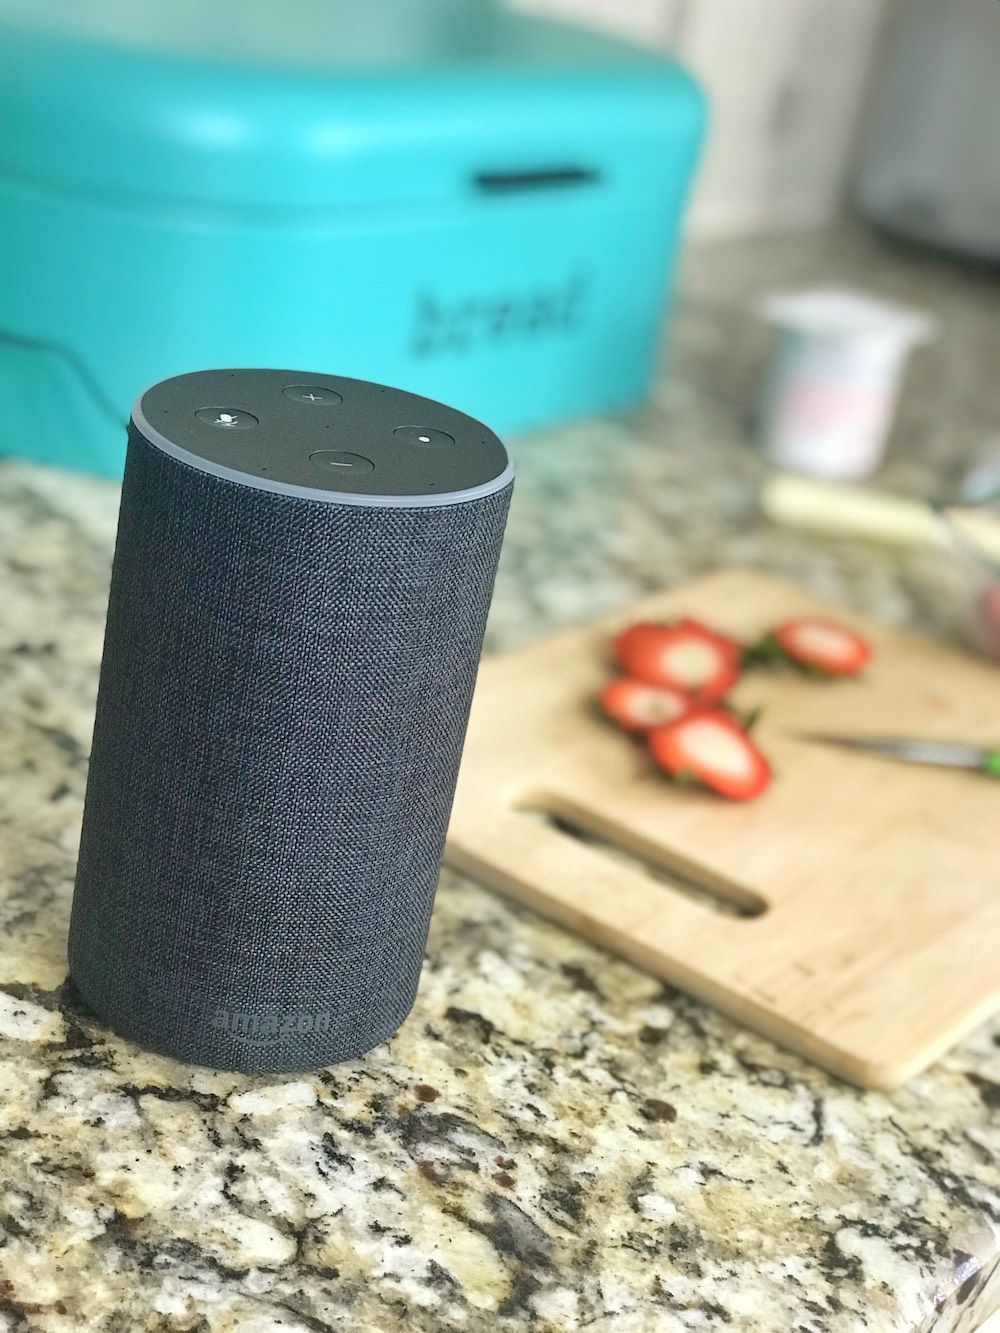 Amazon Echo Amazon Alexa close on kitchen counter